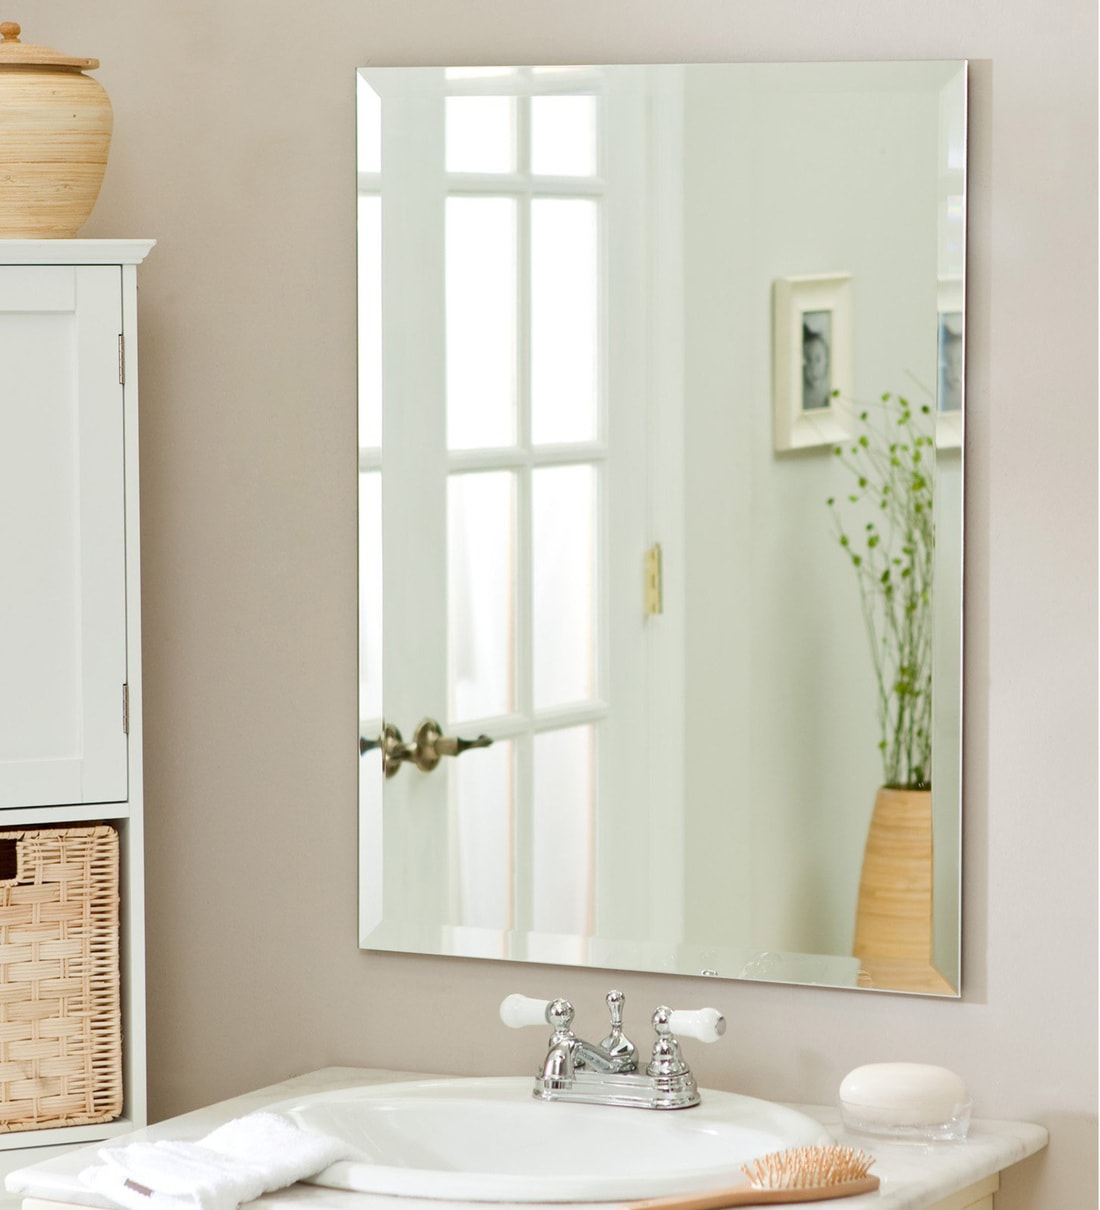 Buy Glass Rectangle Wall Mirror In Transparent Colour By Elegant Arts Frames Online Wall Mirrors Wall Accents Home Decor Pepperfry Product